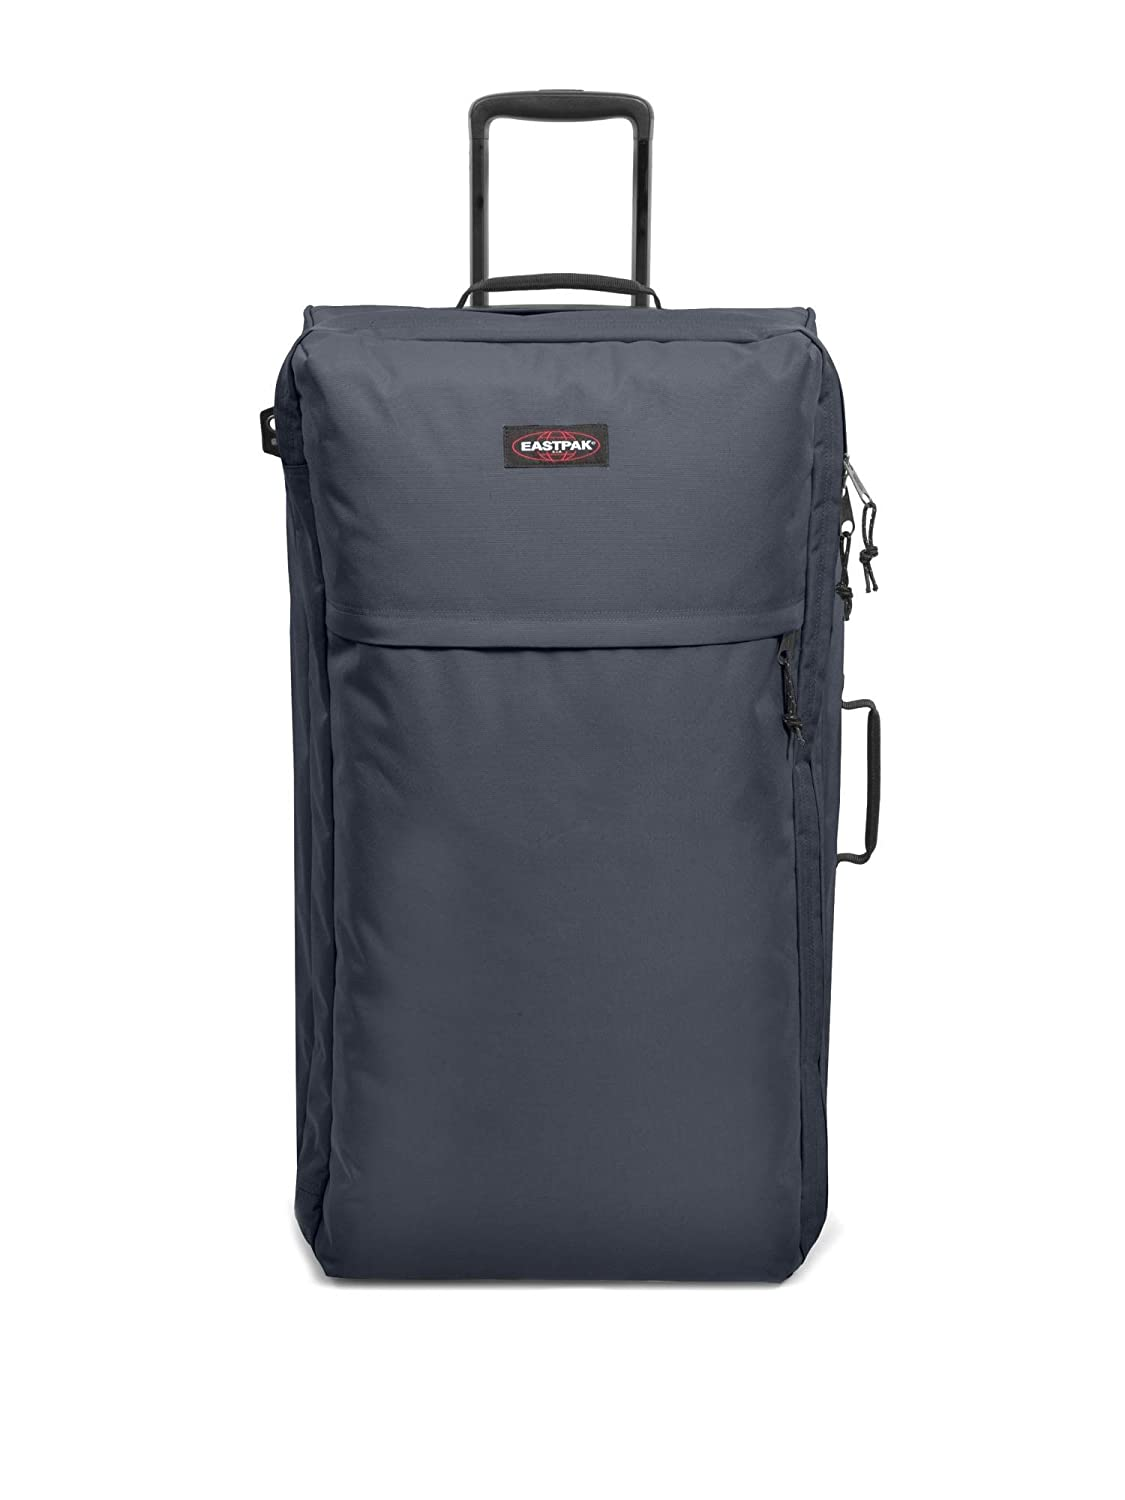 Eastpak Rollkoffer amazon